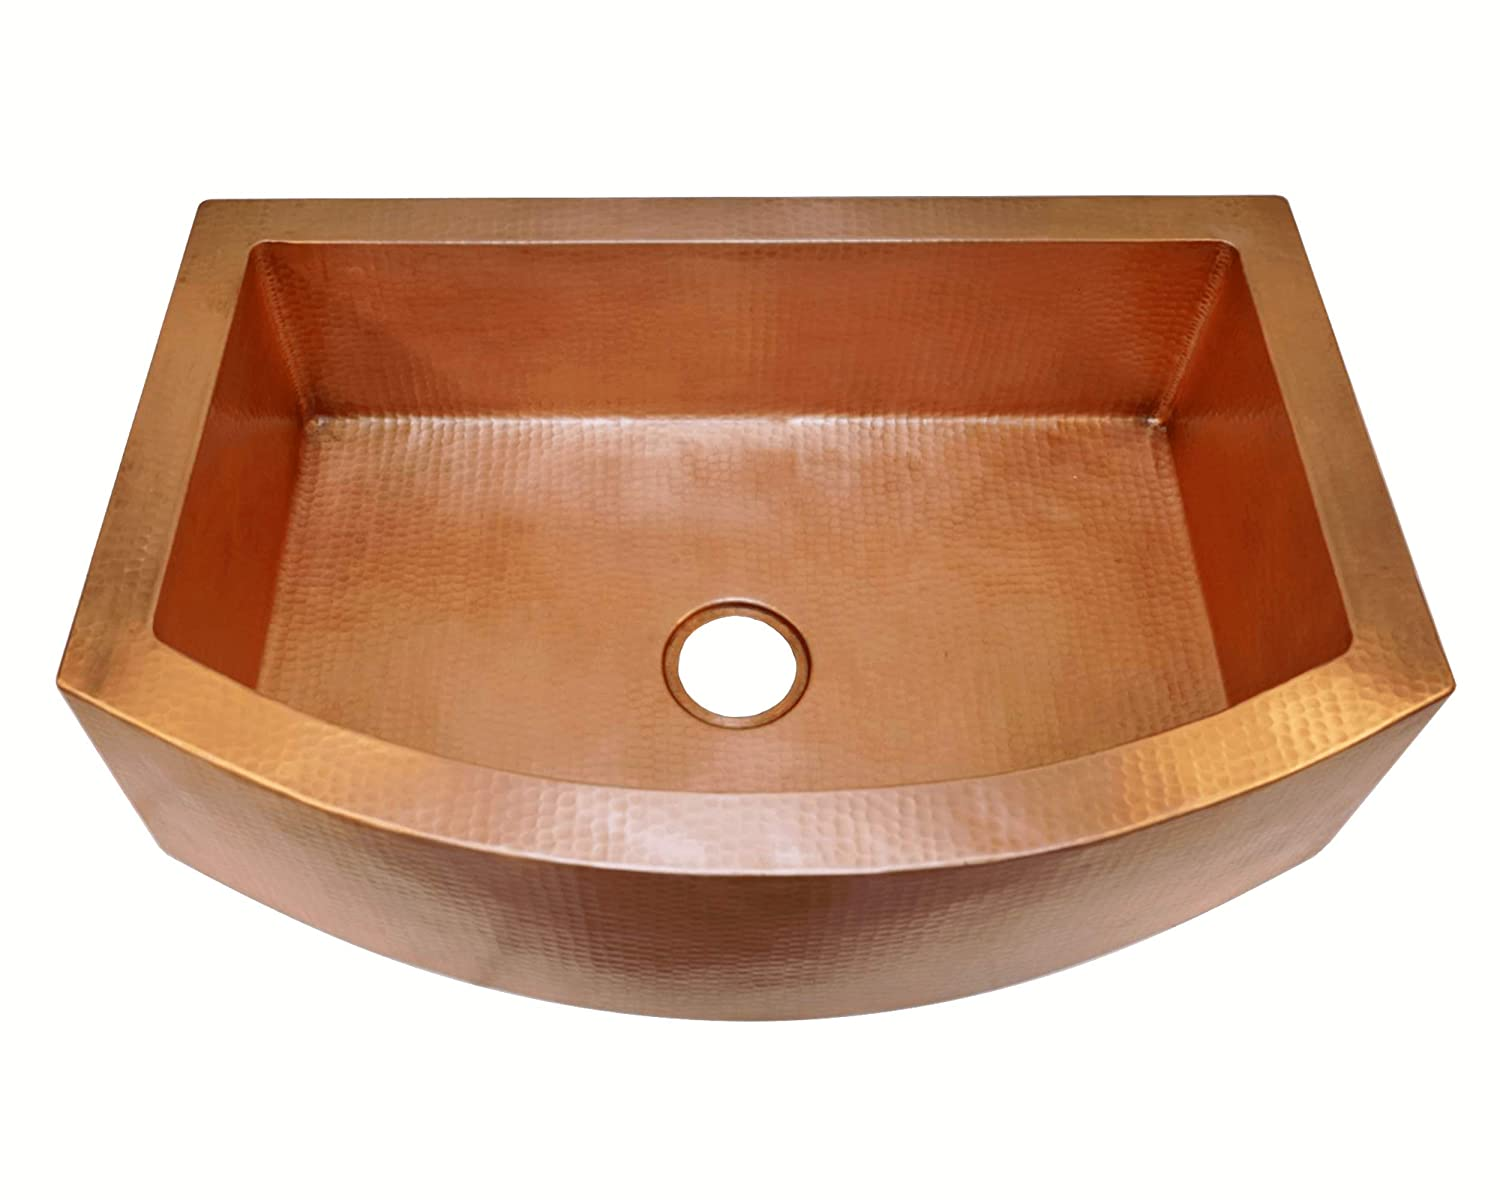 Hammered Copper Farmhouse Sink.Soluna Copper Farmhouse Sink With Rounded Apron Front 30 Hammered Copper Kitchen Sink In Matte Copper Finish Pure Rounded Copper Style Sink